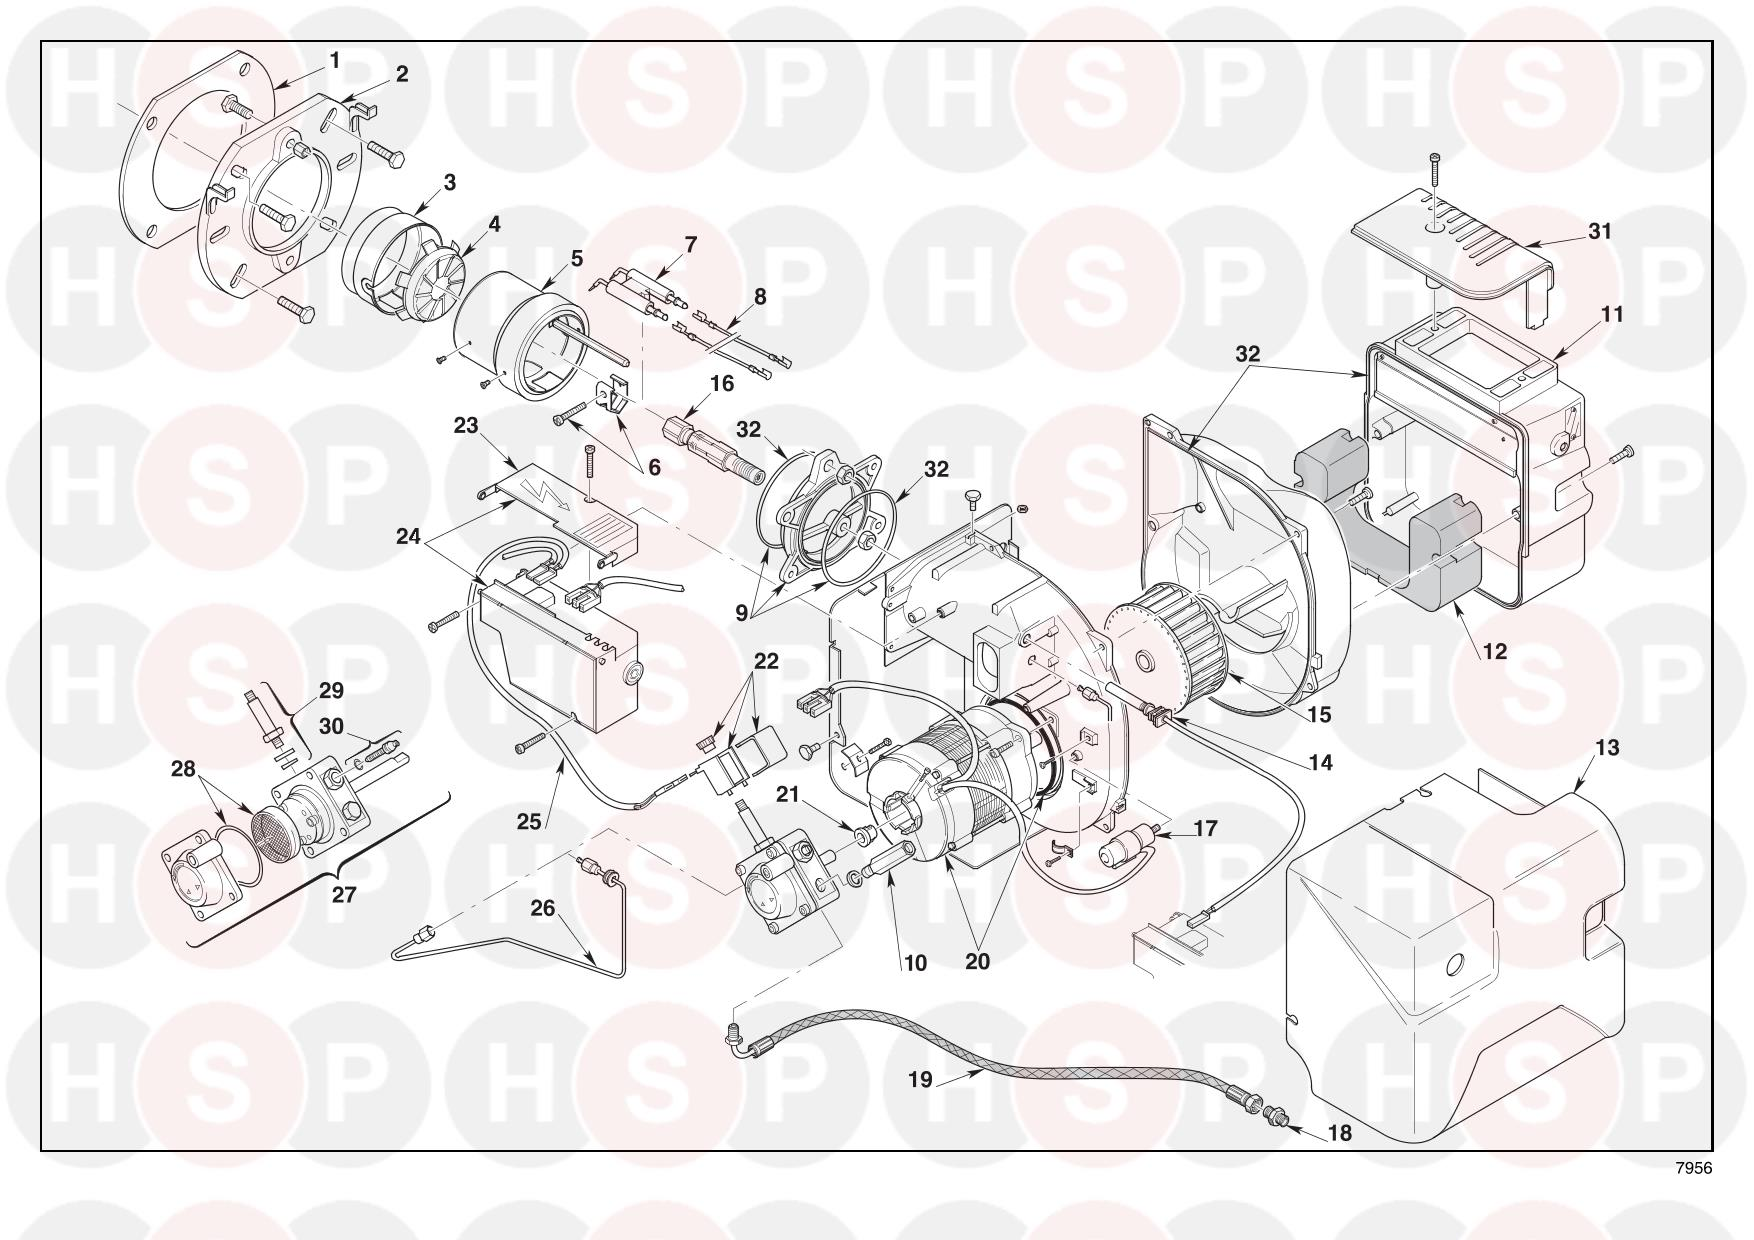 Riello RDB3.2 33/44 (TYPE490T59) (BURNER EXPLODED VIEW